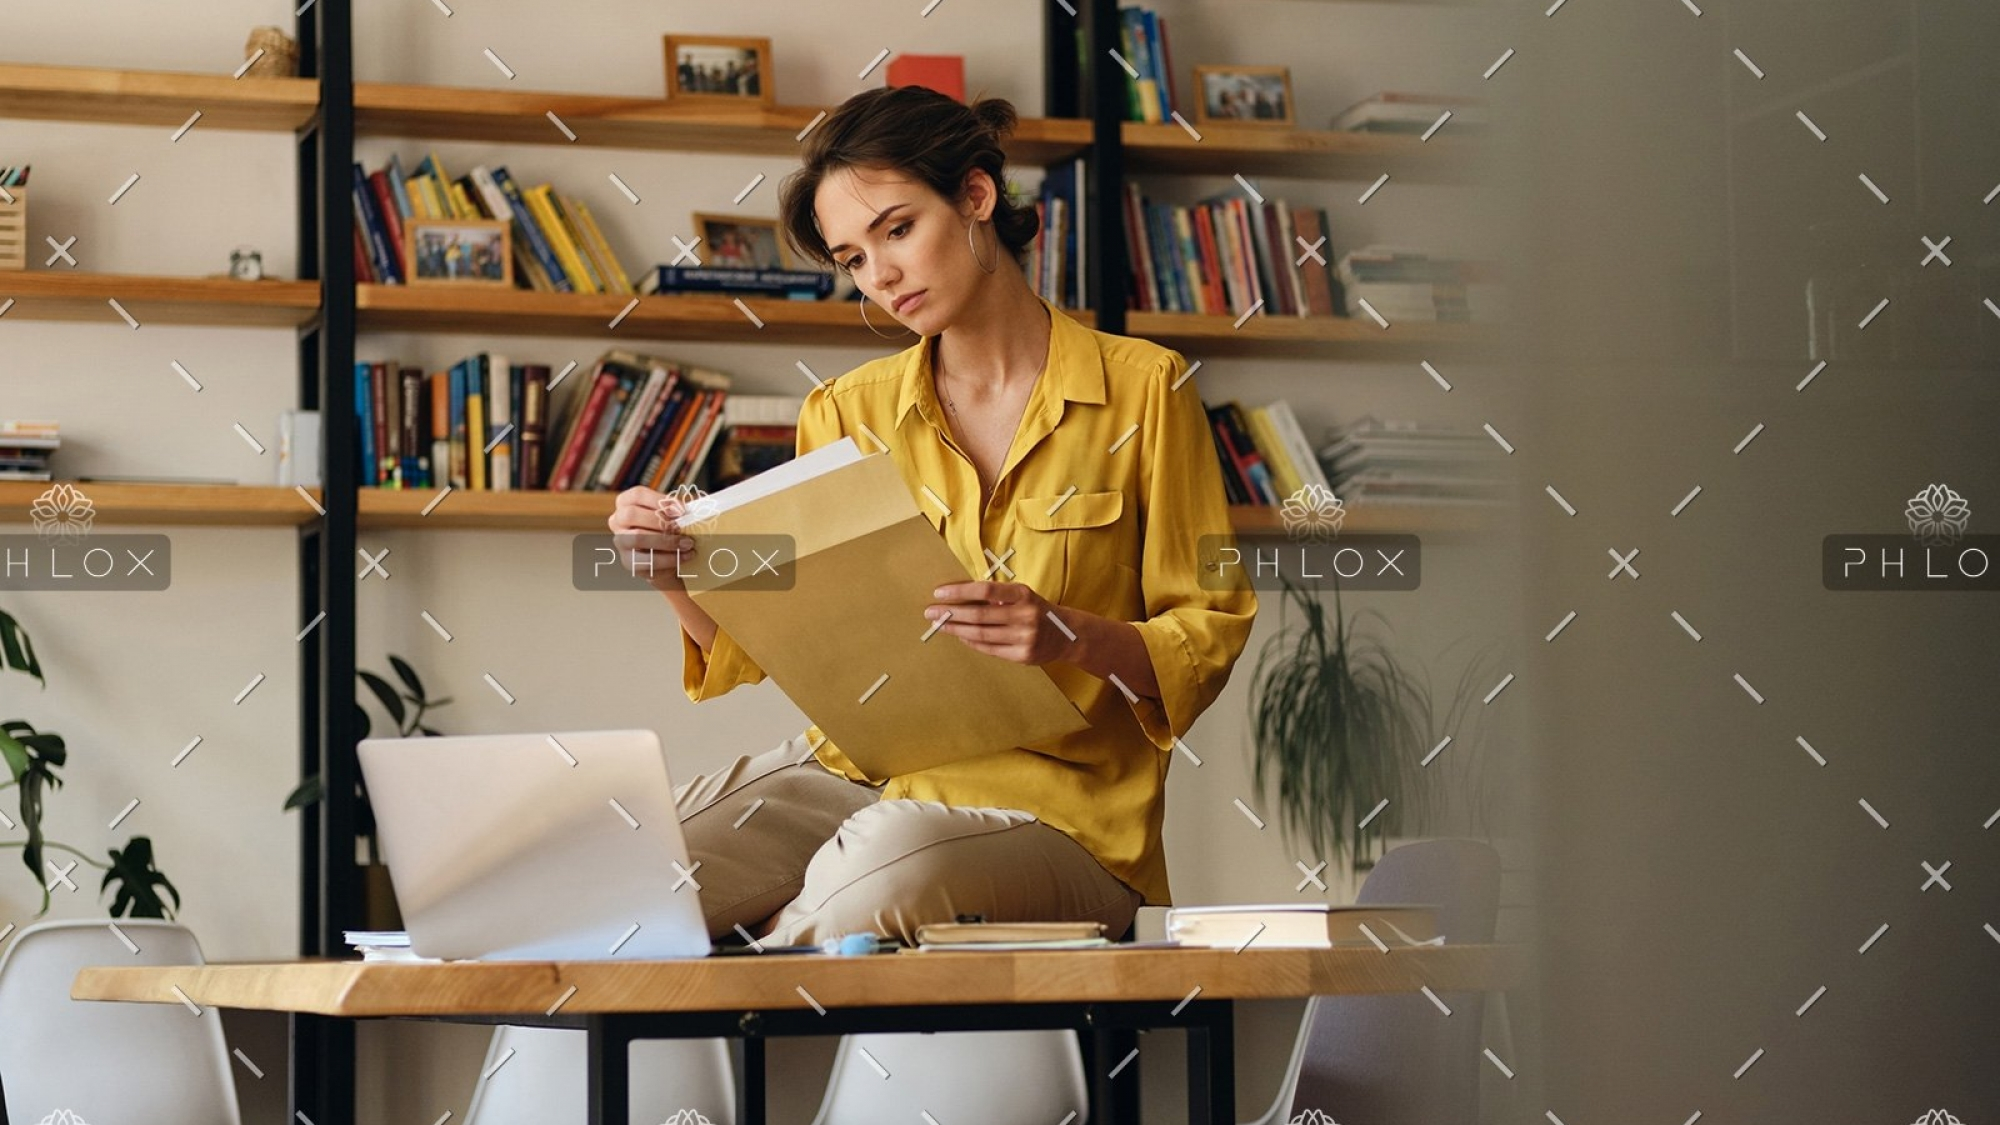 demo-attachment-468-beautiful-woman-in-shirt-sitting-on-desk-with-LE96BAG